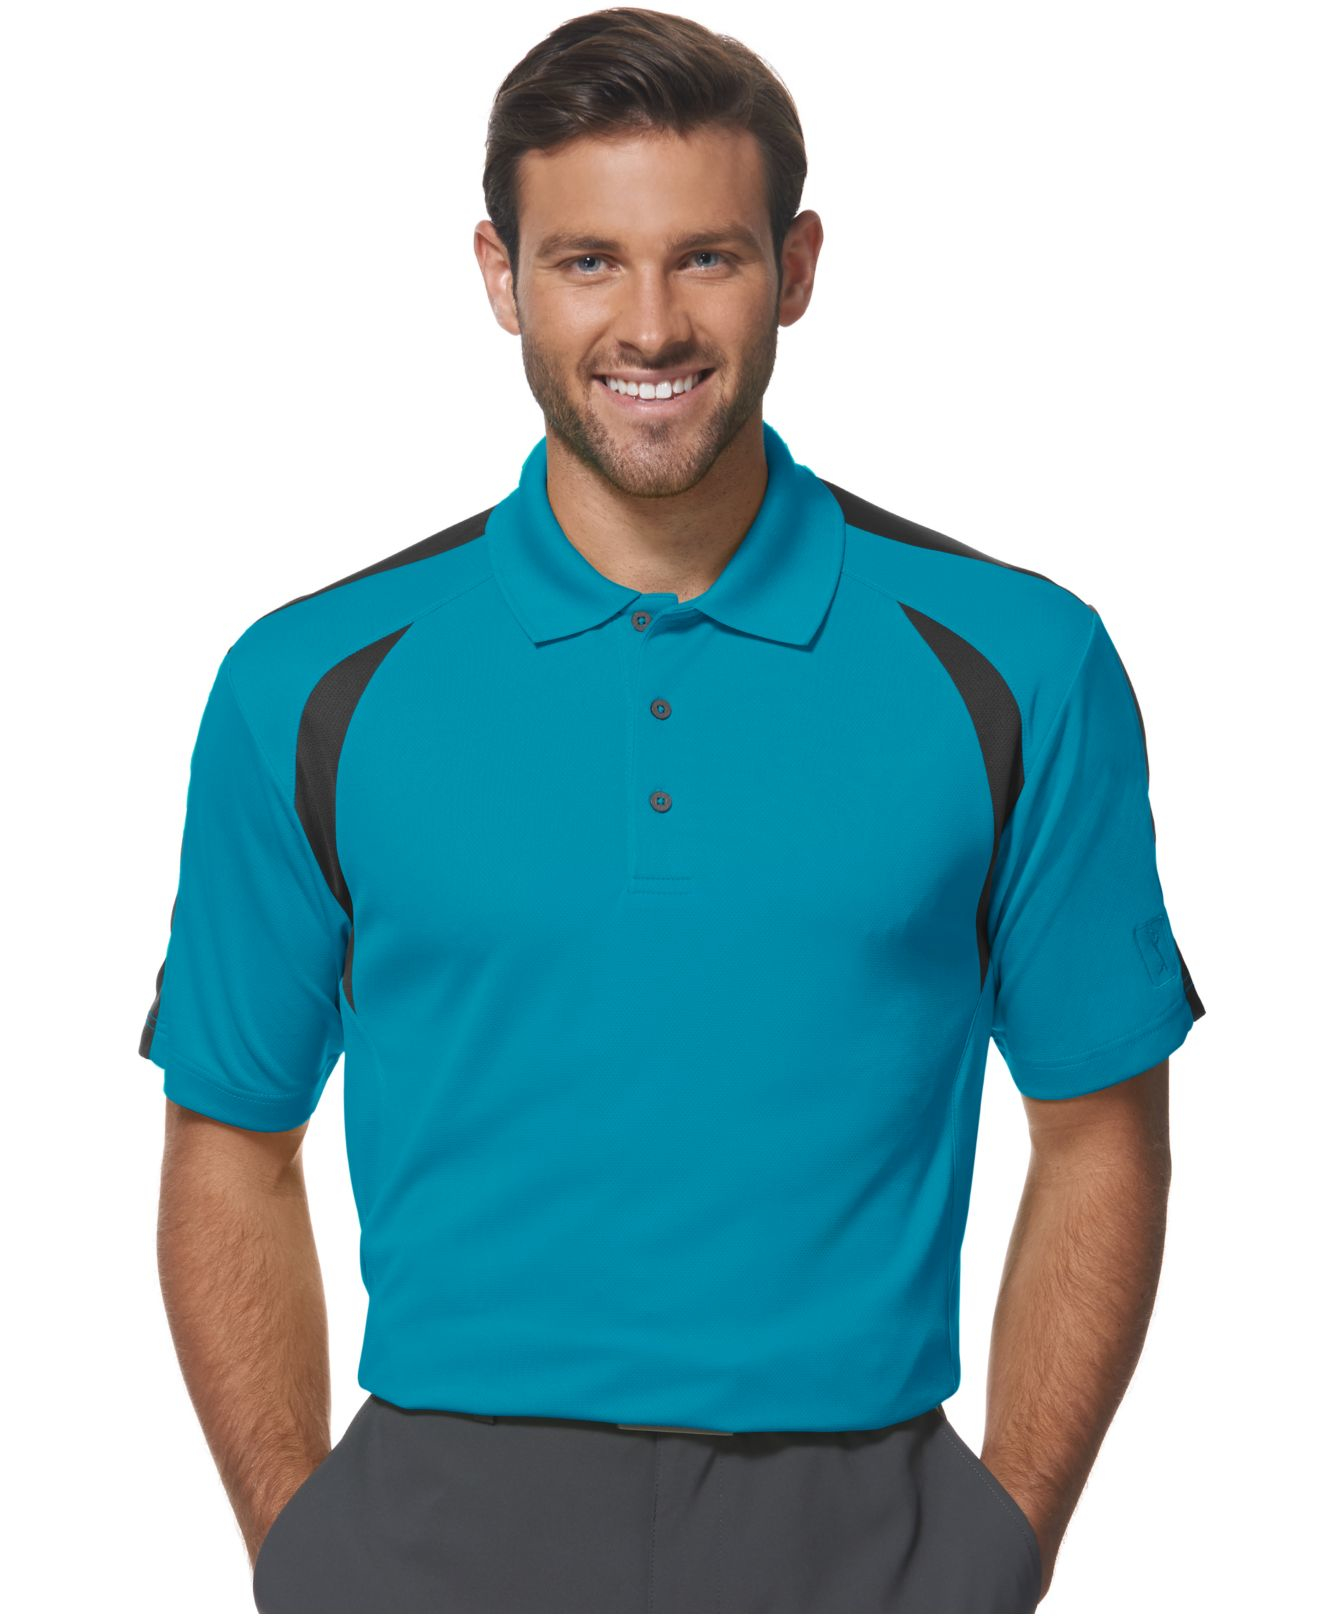 pga tour colorblocked performance golf polo in blue for